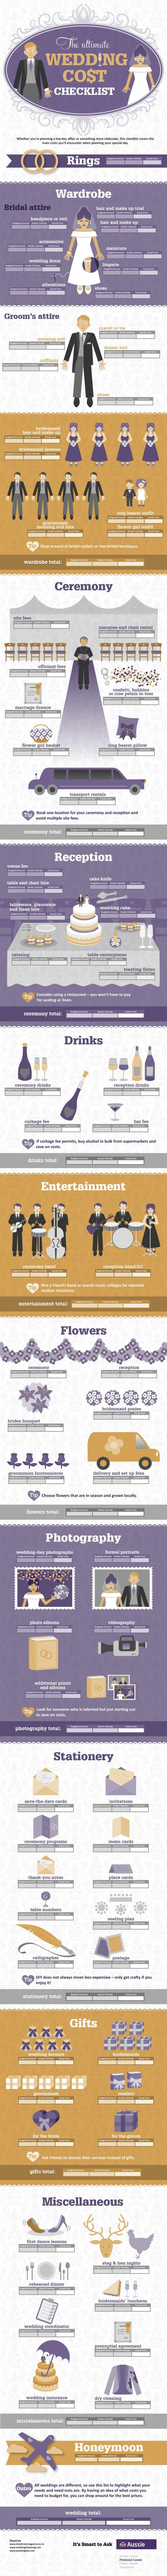 The Ultimate Wedding Cost Checklist Infographic. Wow, its more expensive than i thought.